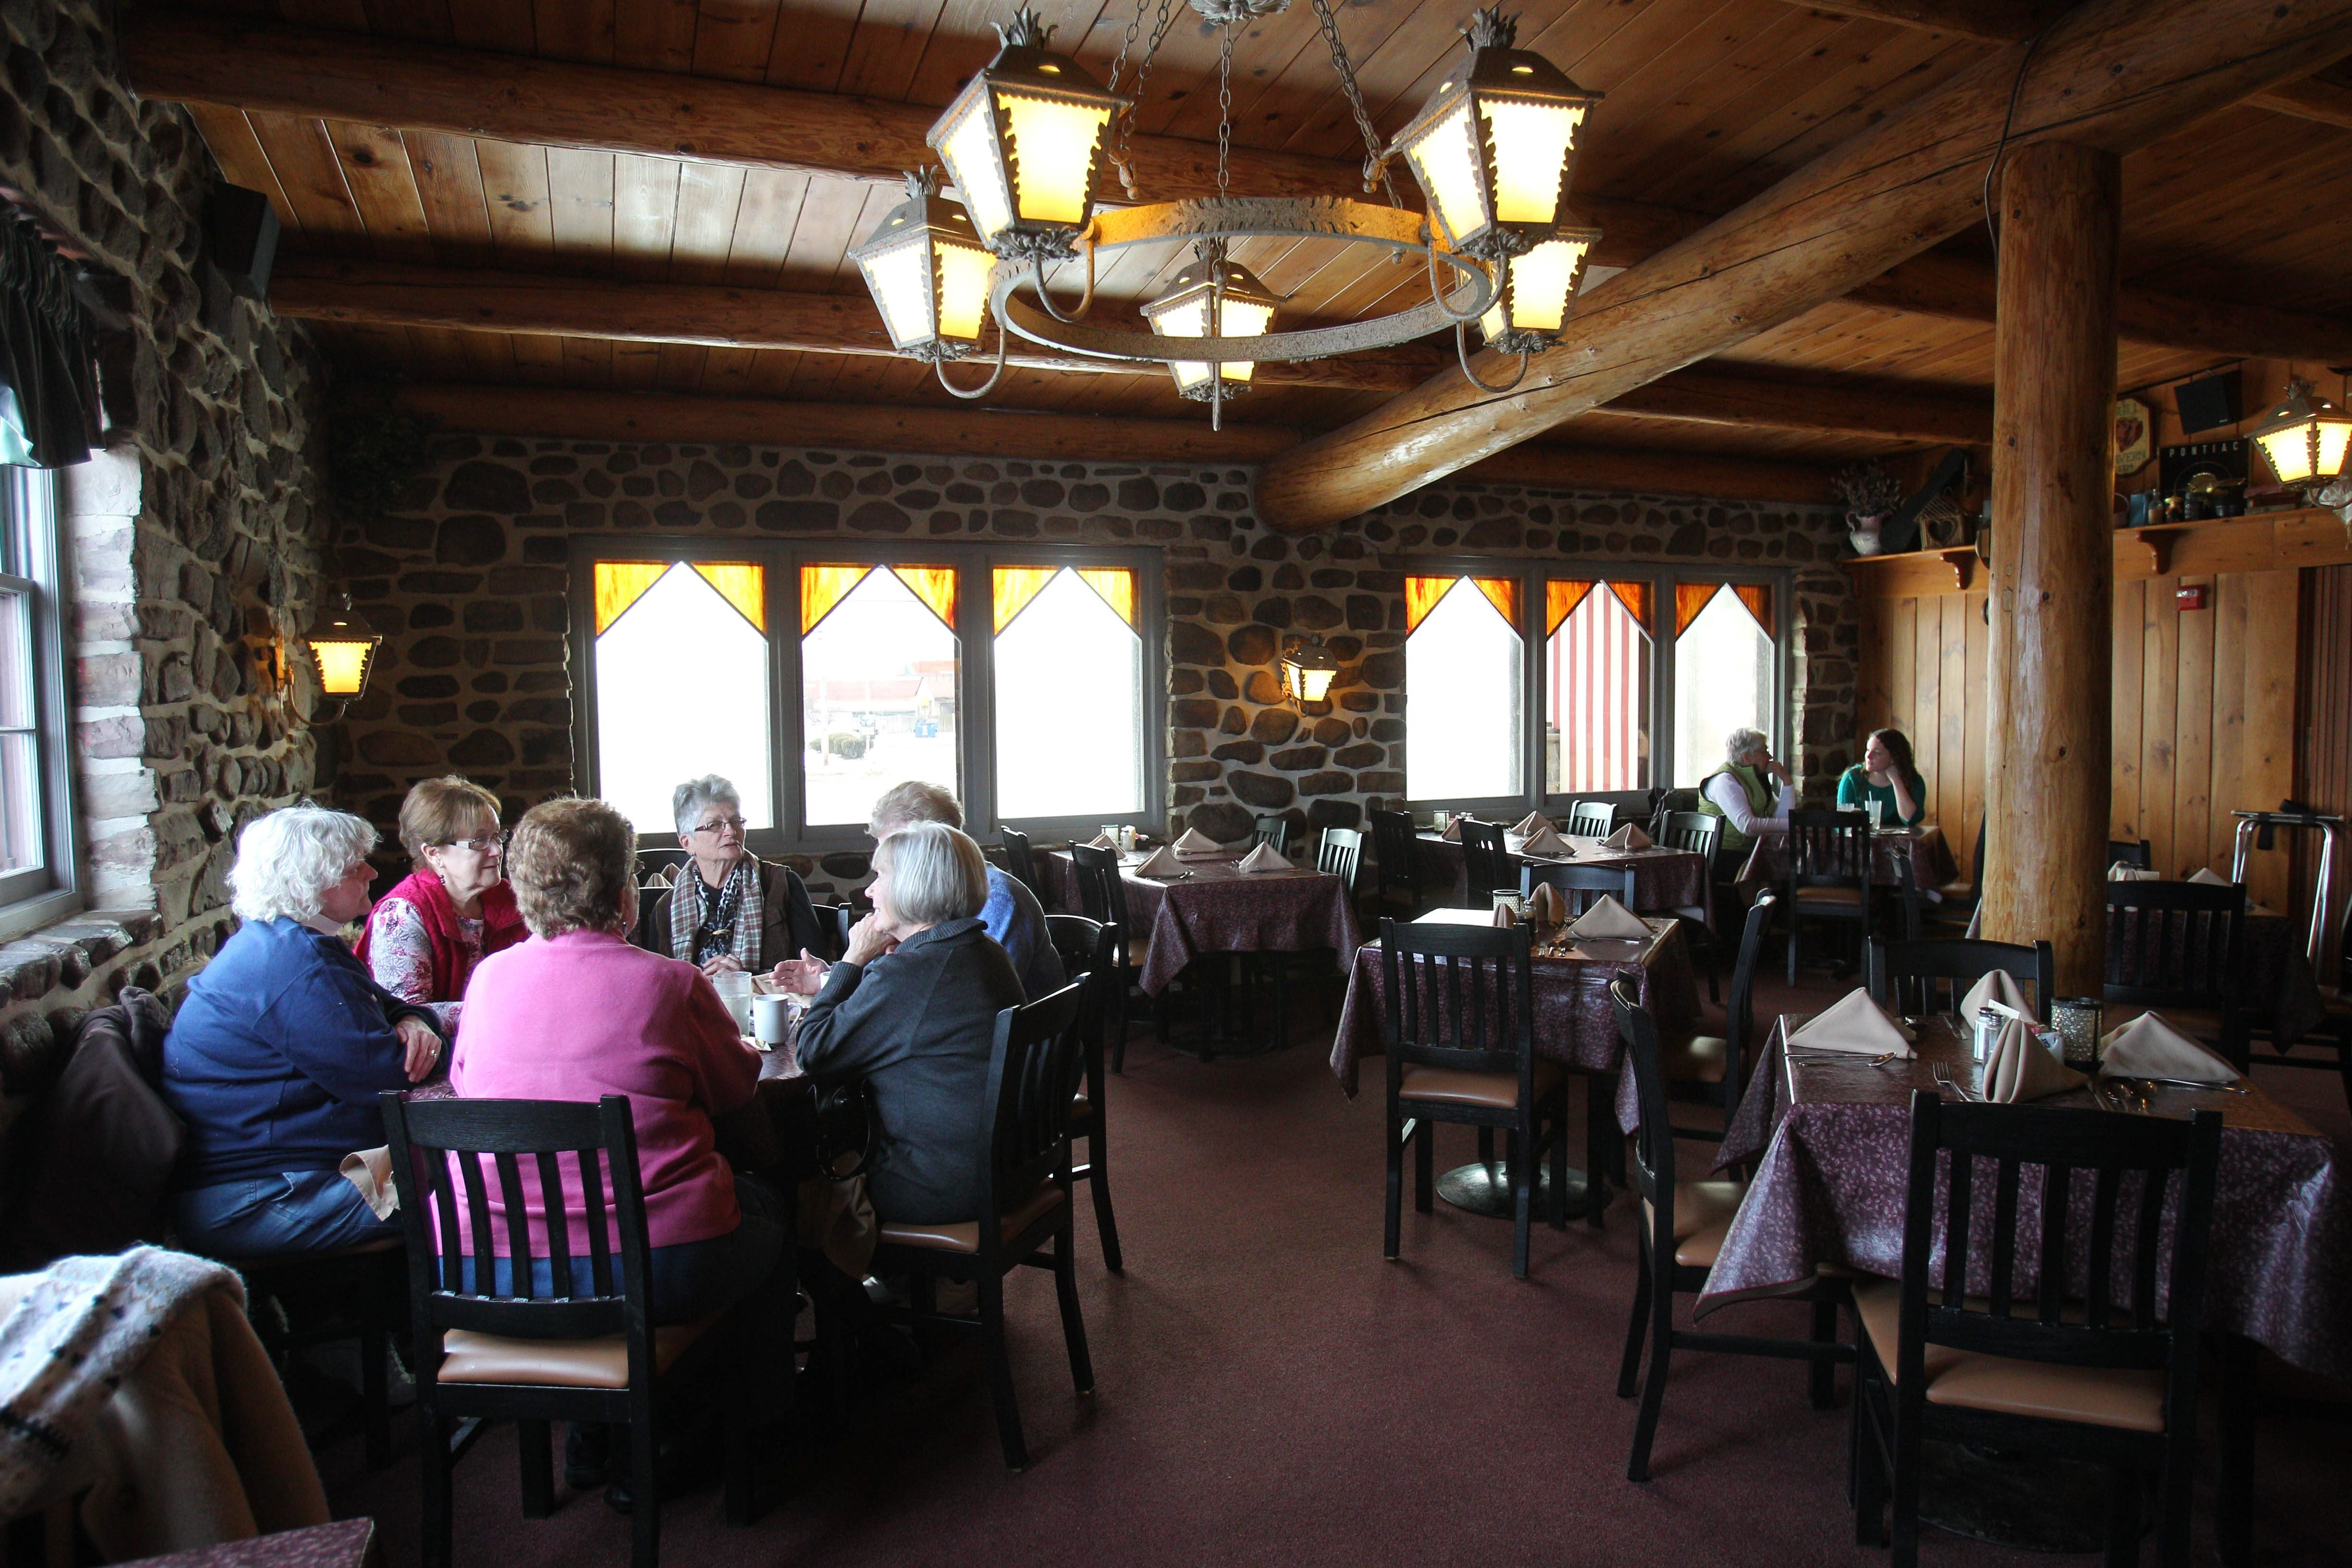 The Fieldstone County Inn on South Transit Road in Lockport opened in 1944 and features an extensive soup and salad bar.